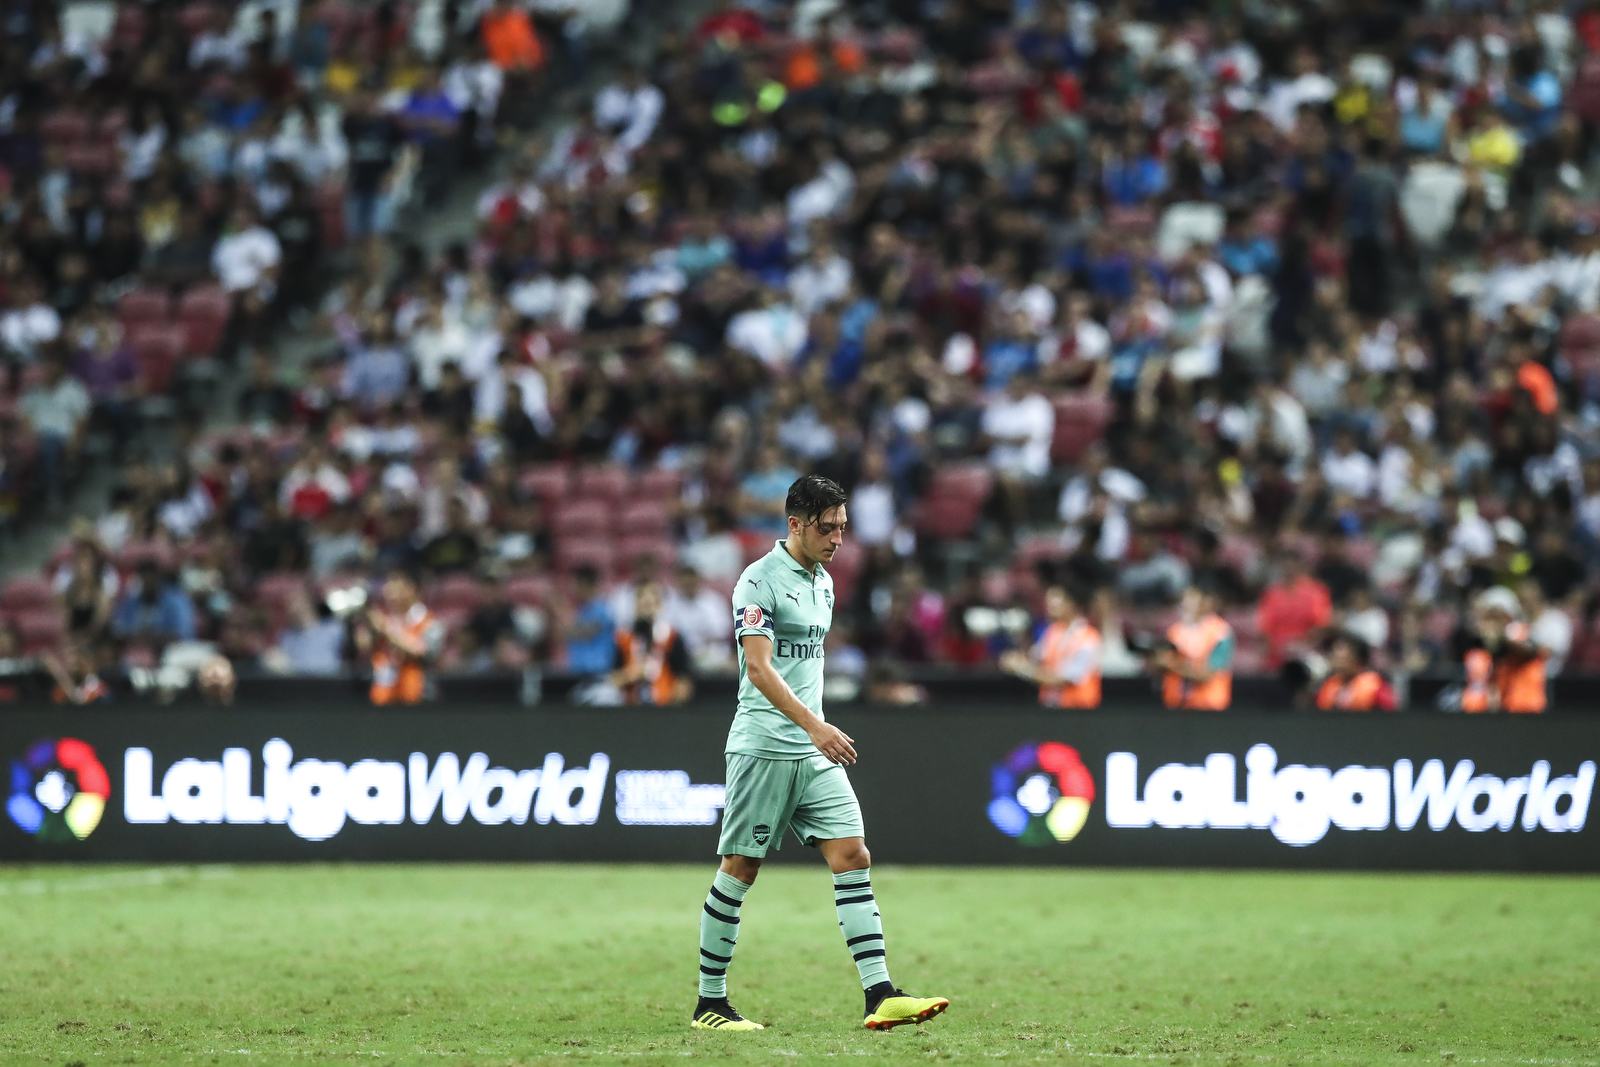 Arsenal's Mesut Ozil walks off the pitch after being substituted during the International Champions Cup match between Arsenal and Paris Saint-Germain in Singapore, Saturday, July 28, 2018. (AP Photo/Yong Teck Lim)